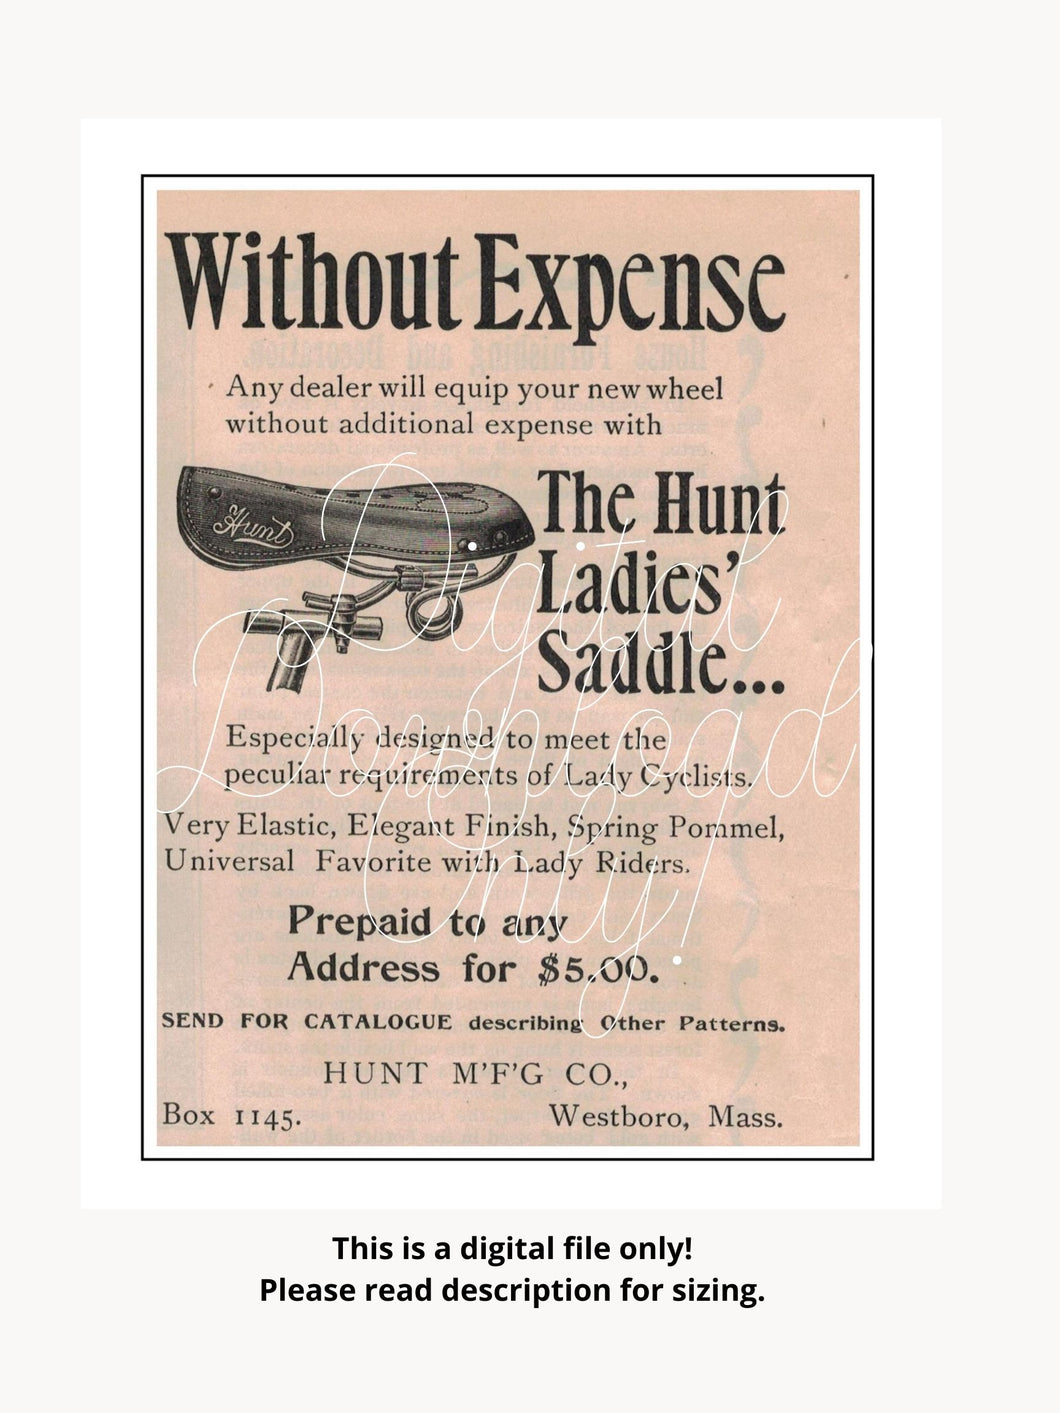 Hunt Manufacturing Co. 1896 Ad For The Hunt Ladies Saddle